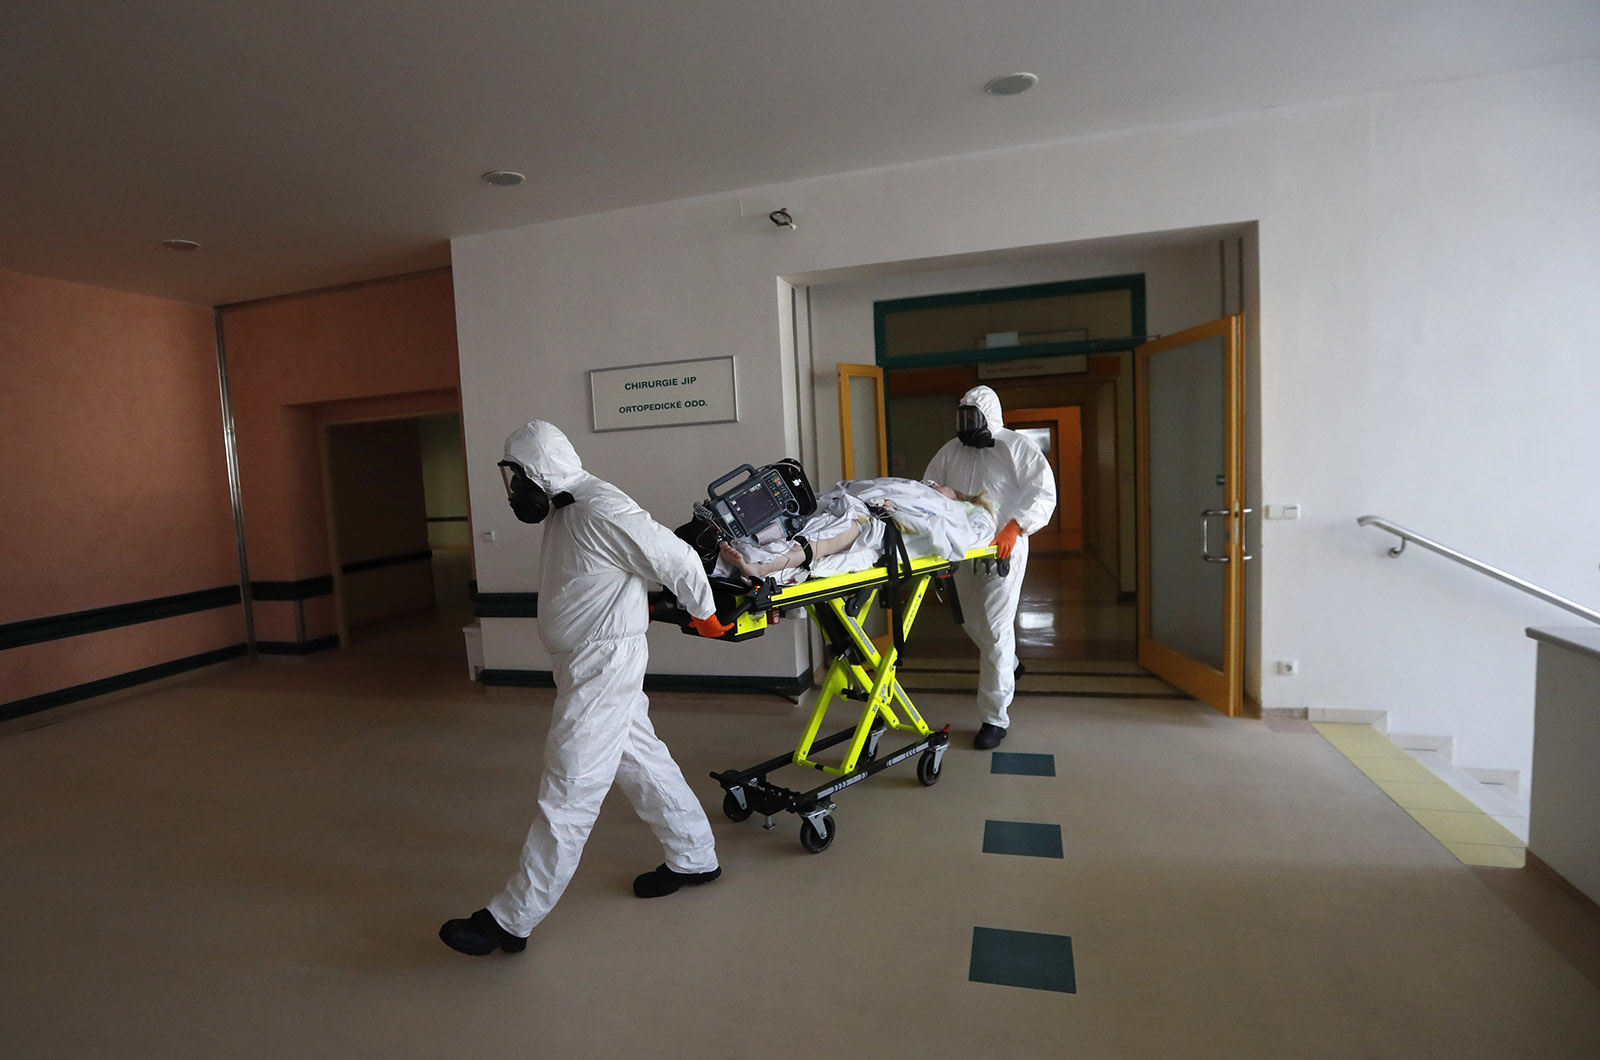 Healthcare workers transport a Covid-19 patient from an intensive care unit at a hospital in Kyjov to a hospital in Brno, Czech Republic on October 22.